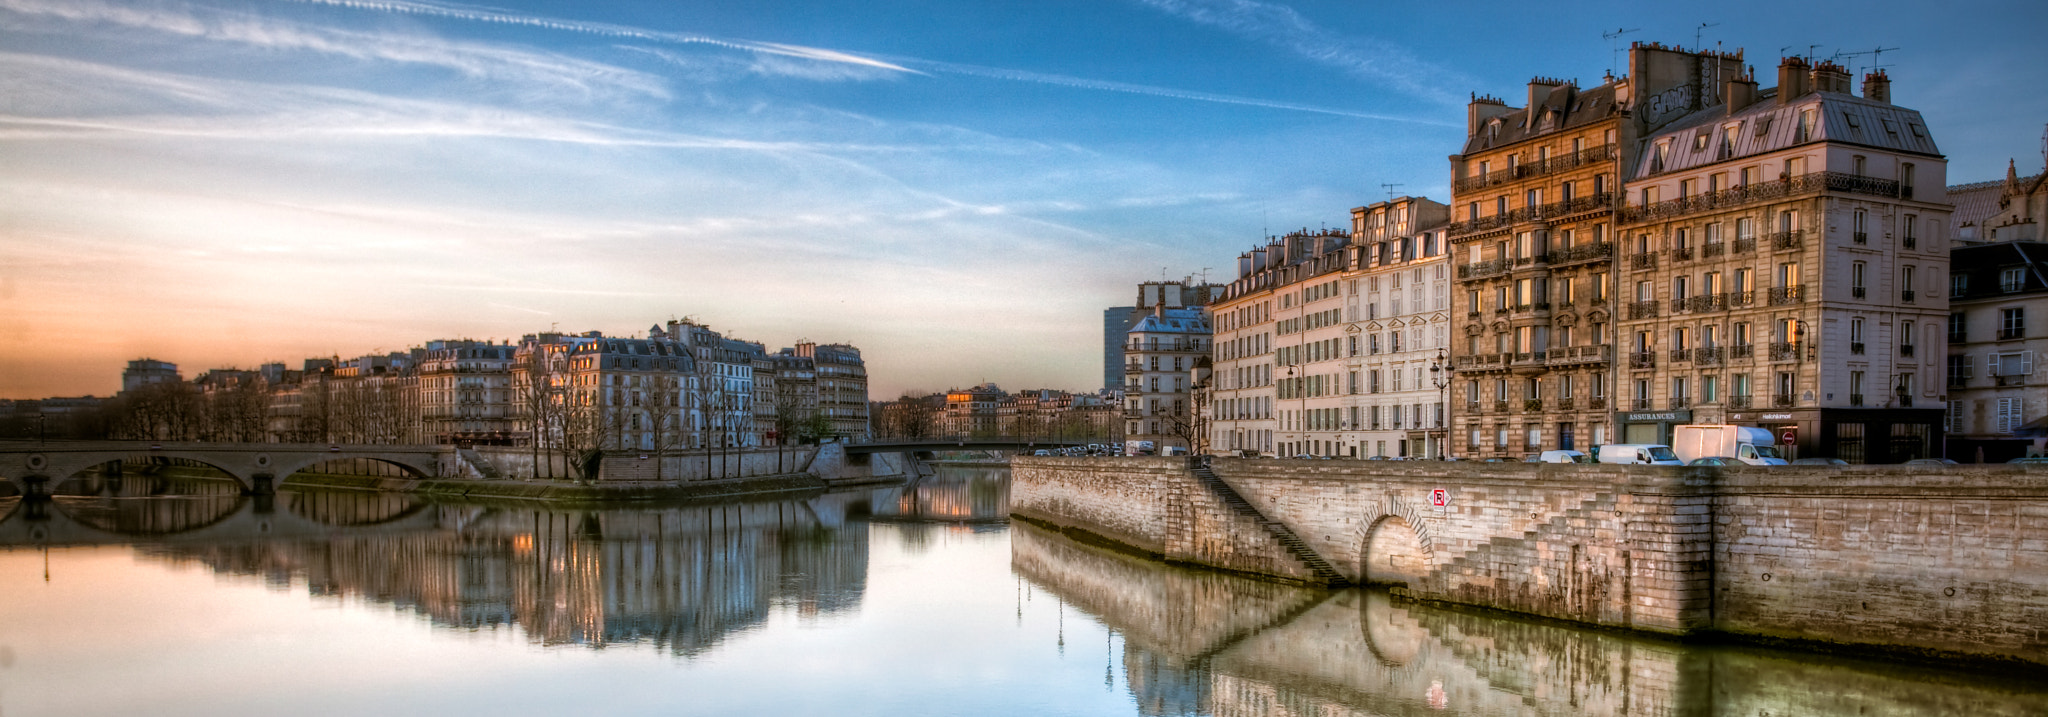 Photograph The Seine in the morning Paris by Ramelli Serge on 500px